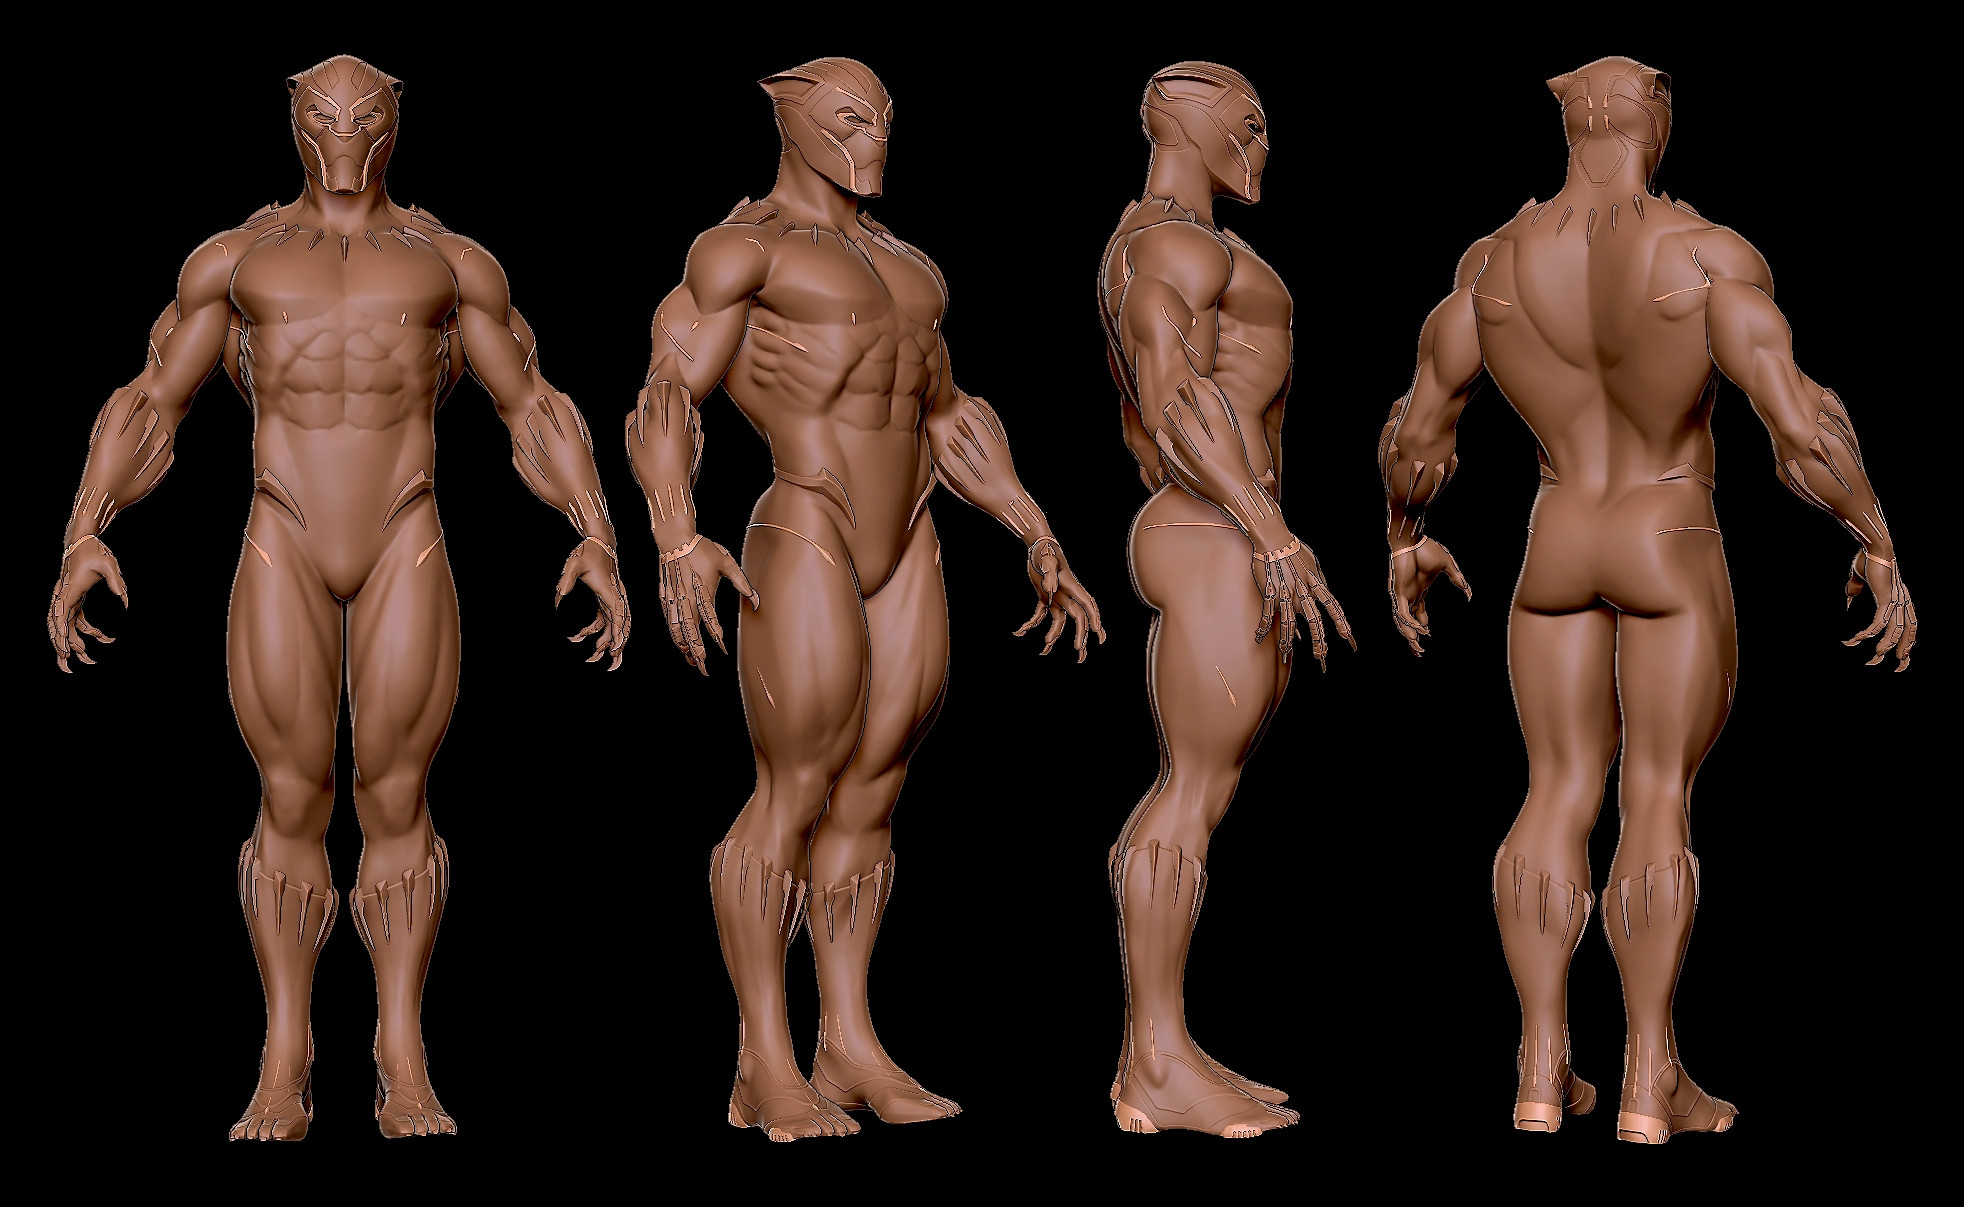 3. Finally, satisfied with the hi-rez sculpt I felt comforfortable enough to move on to topo the low-res cage.